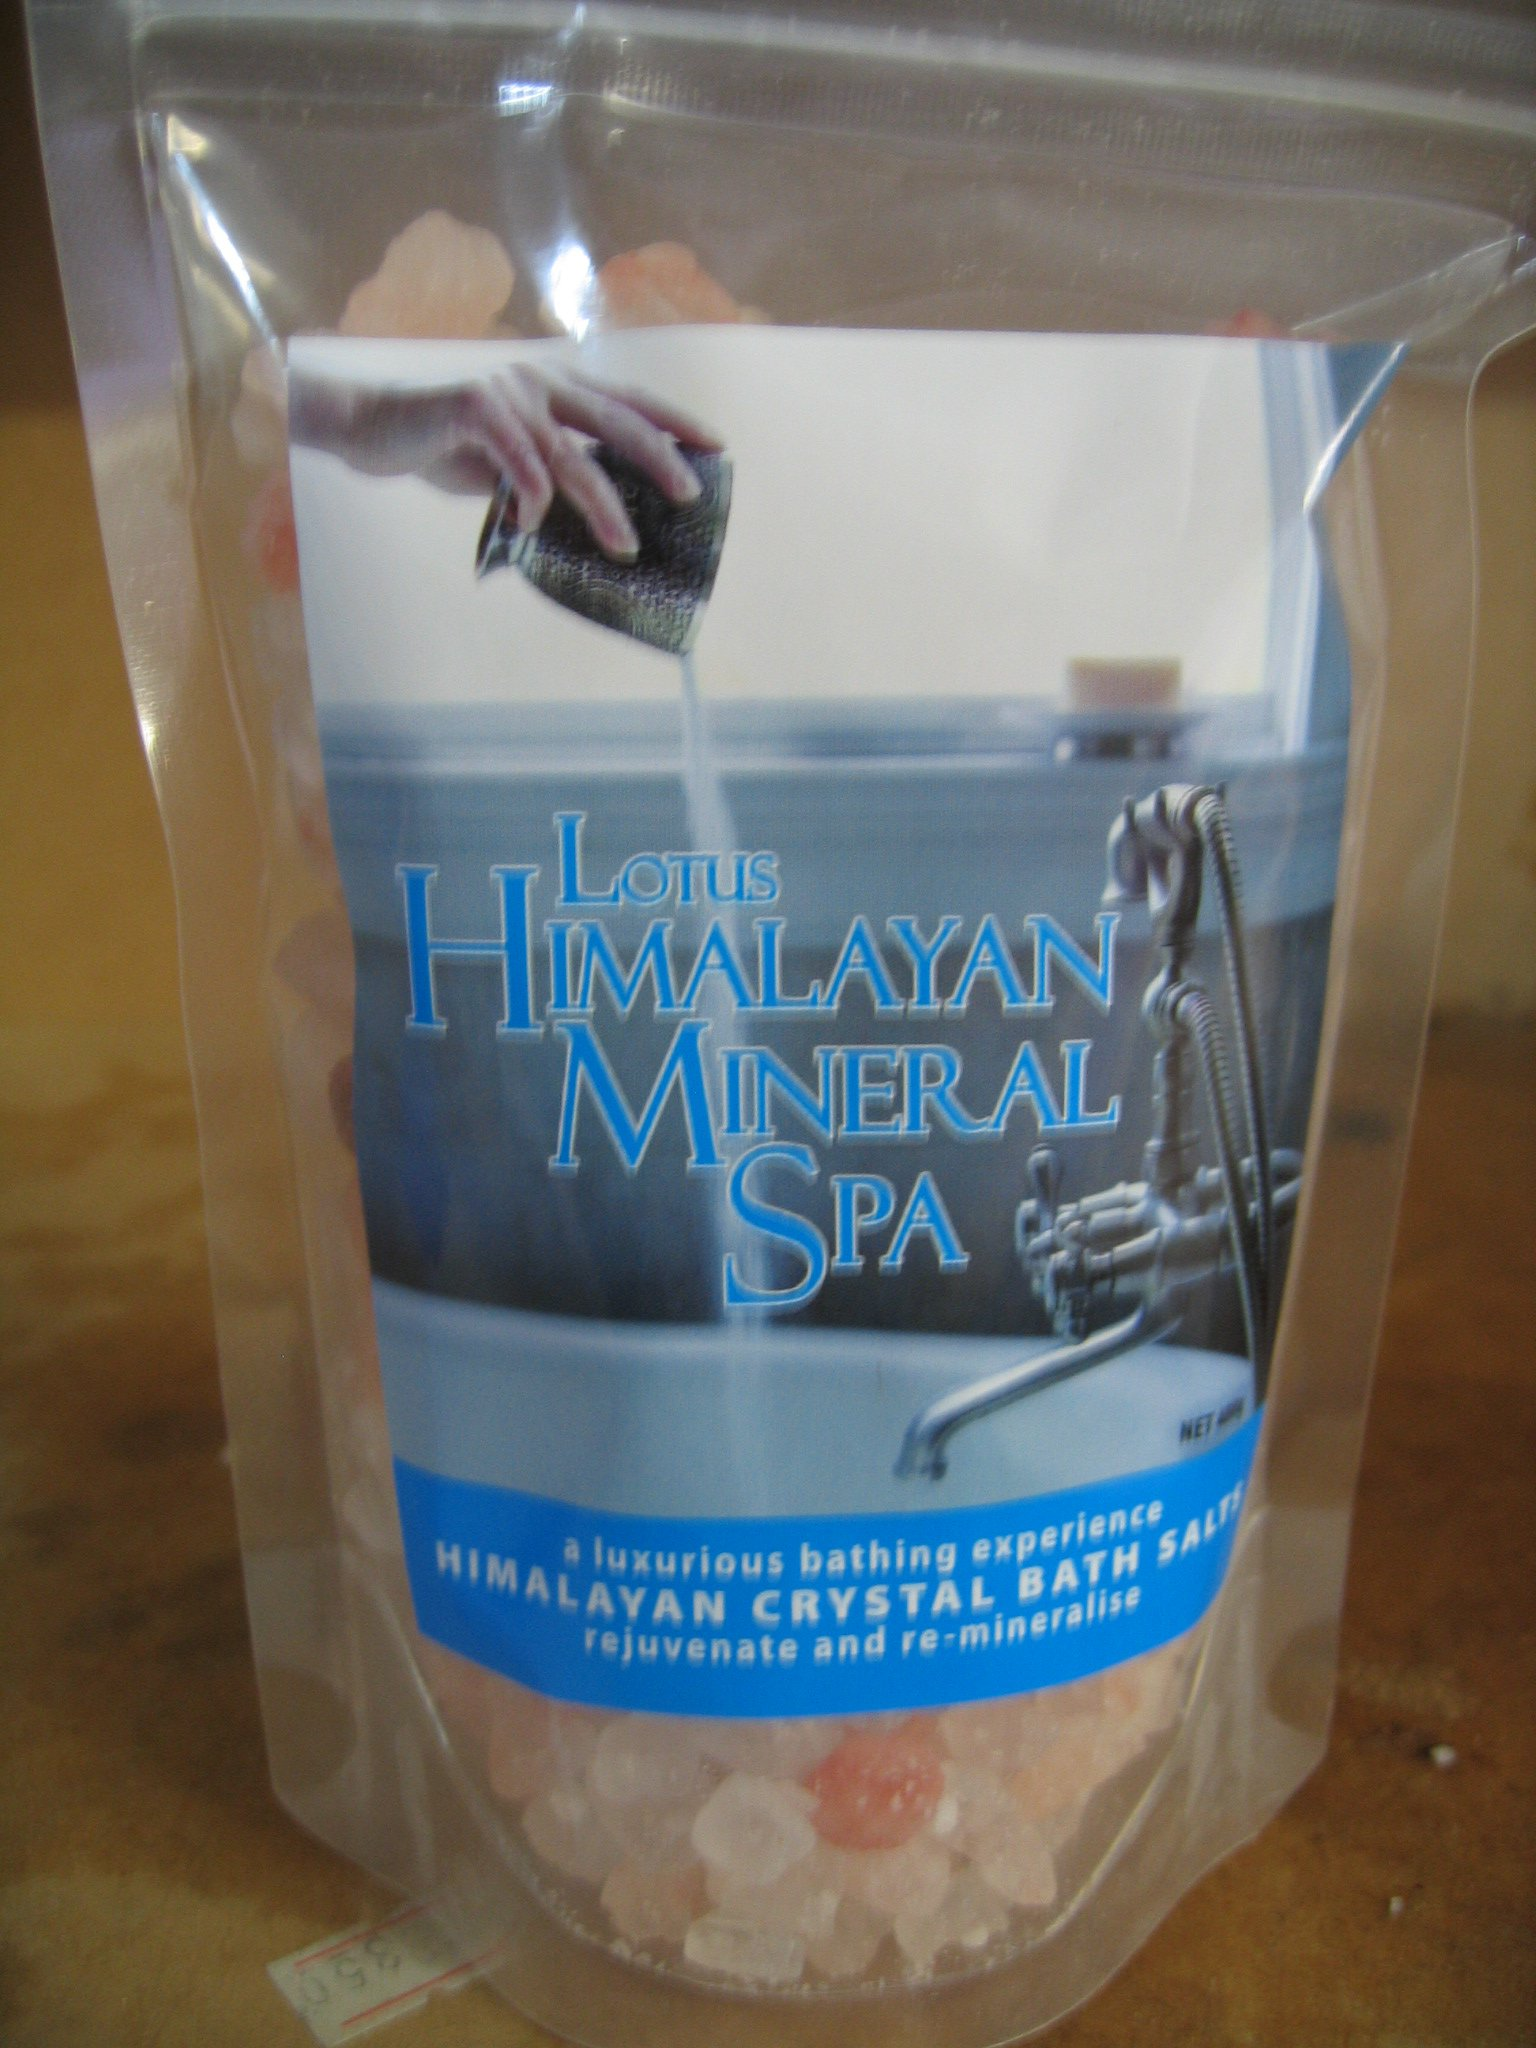 Buy Lotus Himalayan Mineral Spa Bath Salts Online - 1kg